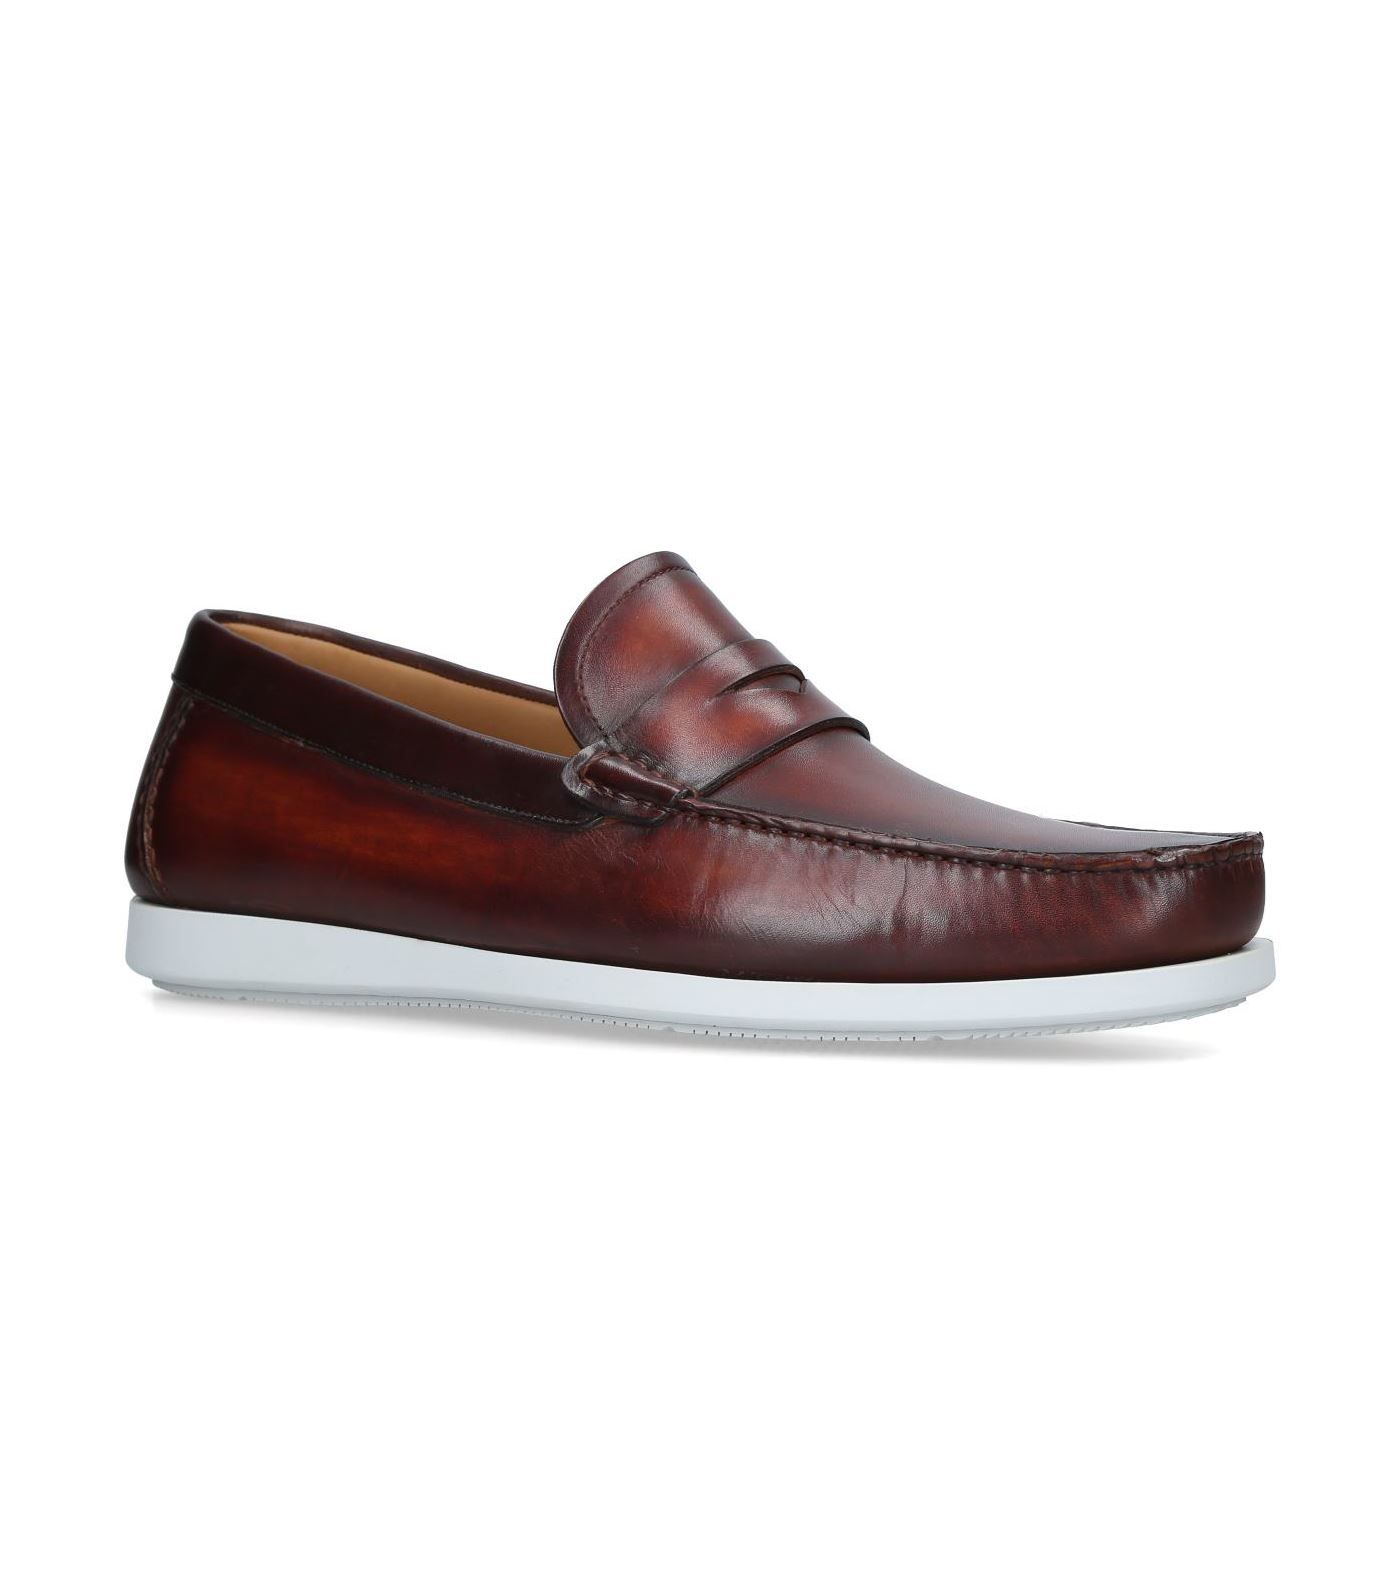 24b436a9236 MAGNANNI LEATHER PENNY BOAT SHOES.  magnanni  shoes